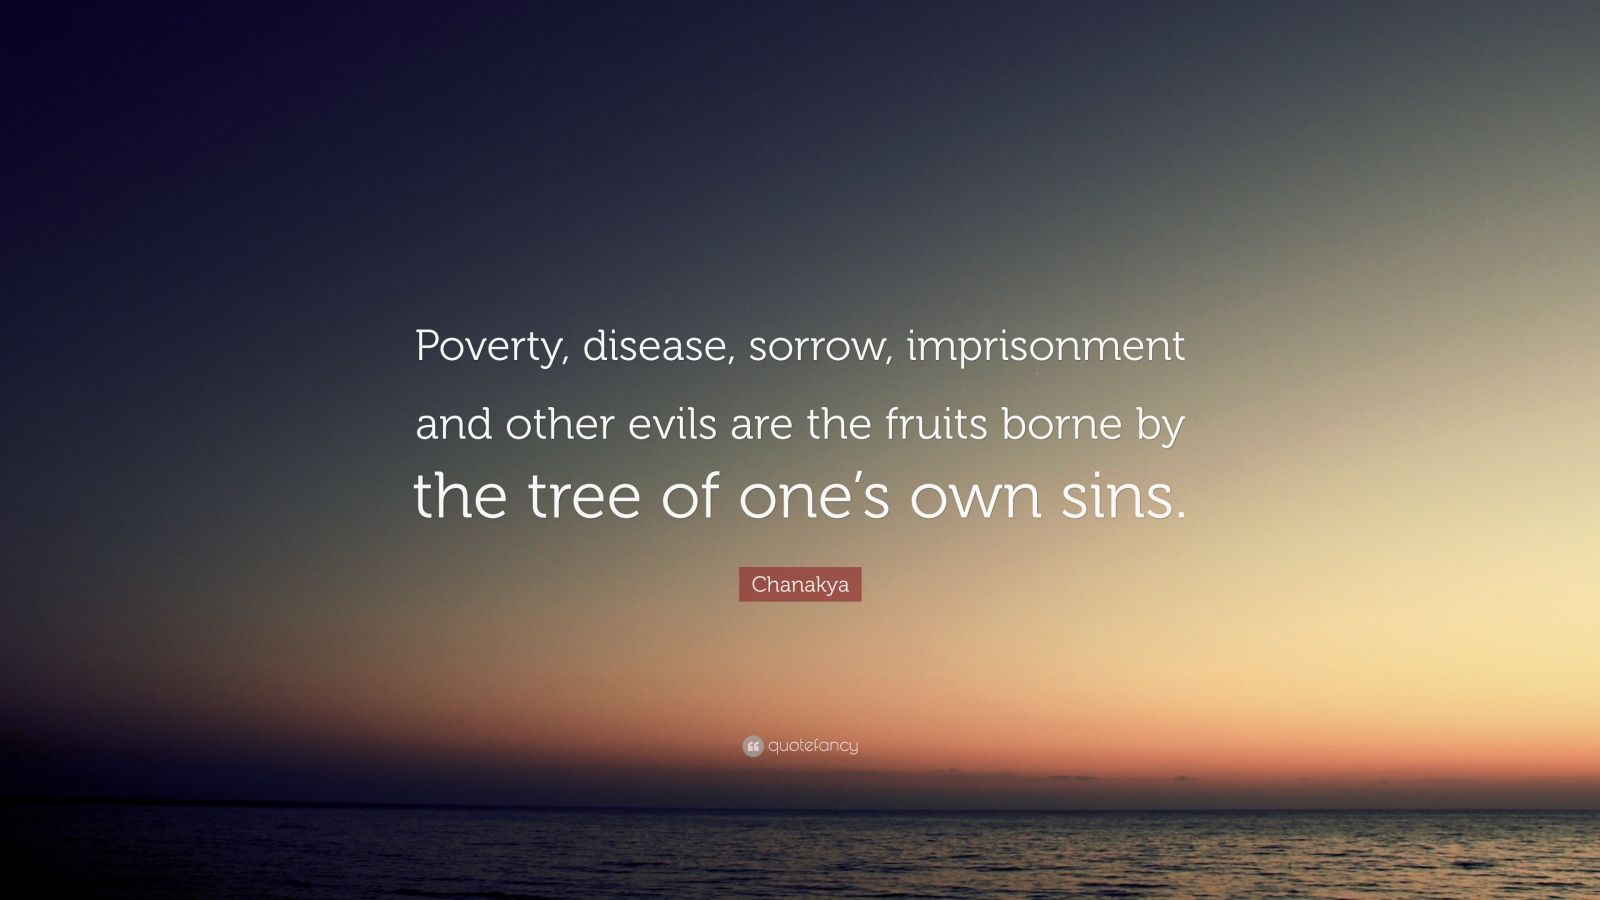 """Chanakya Quote: """"Poverty, disease, sorrow, imprisonment and other evils are the fruits borne by the tree of one's own sins."""""""